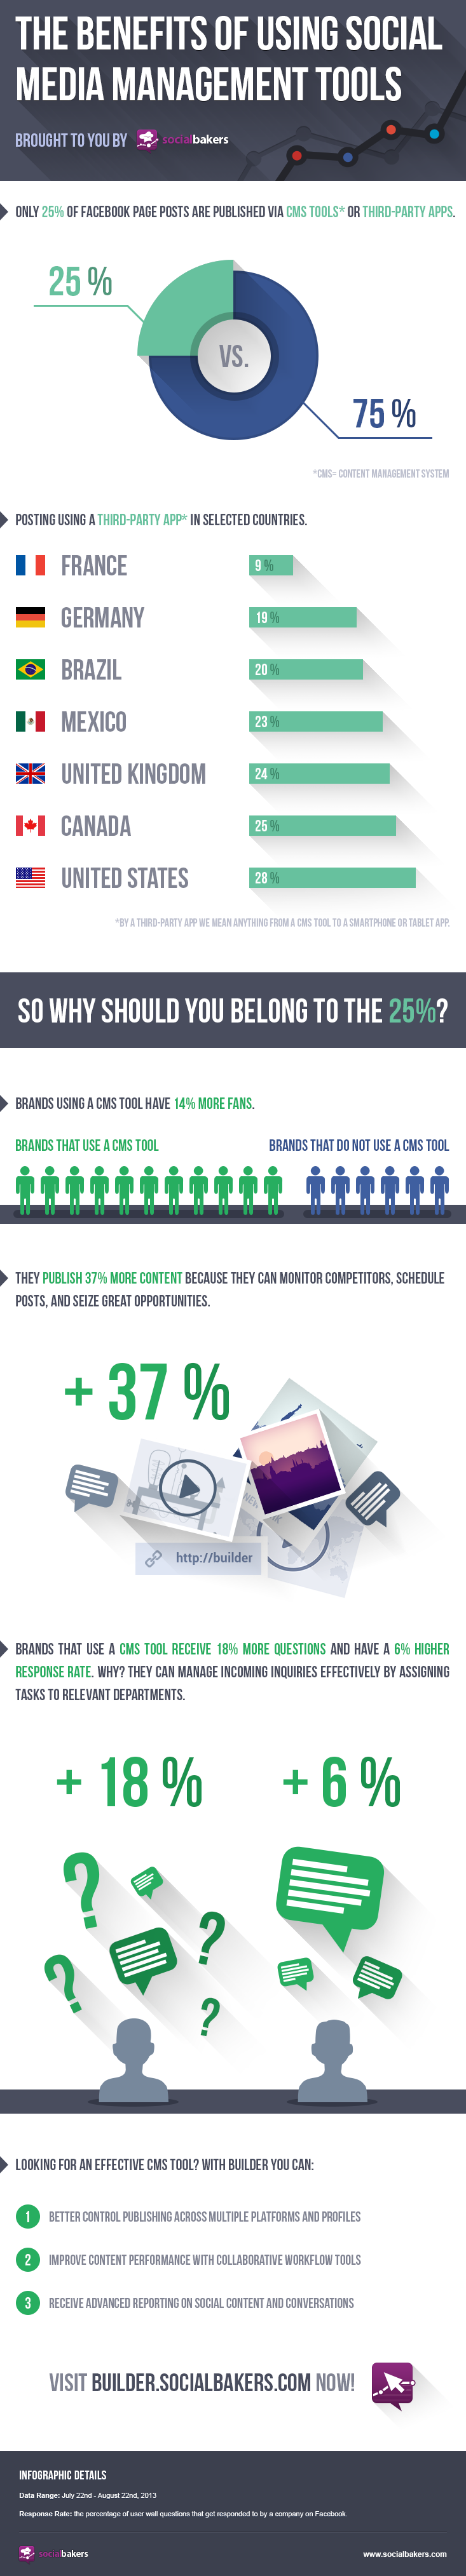 Brands, Engagement, Fans and Reach on Social Networks